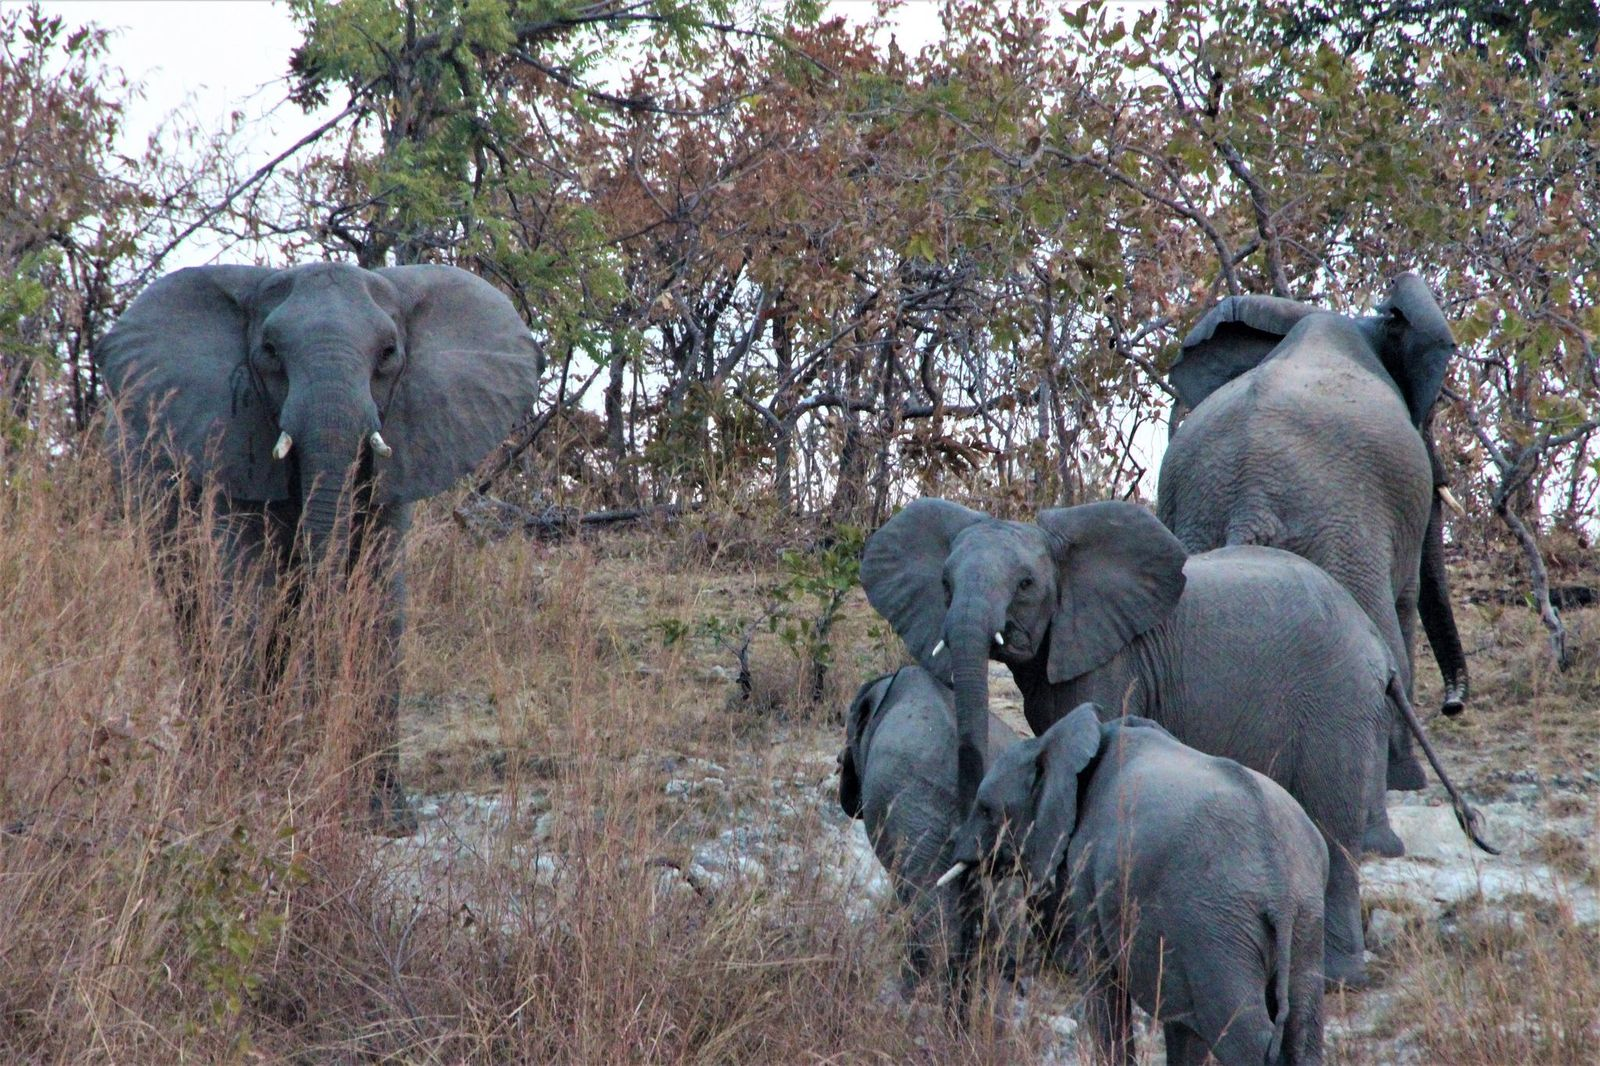 Our visit to Kafue National Park by Jackie Peel June 2020